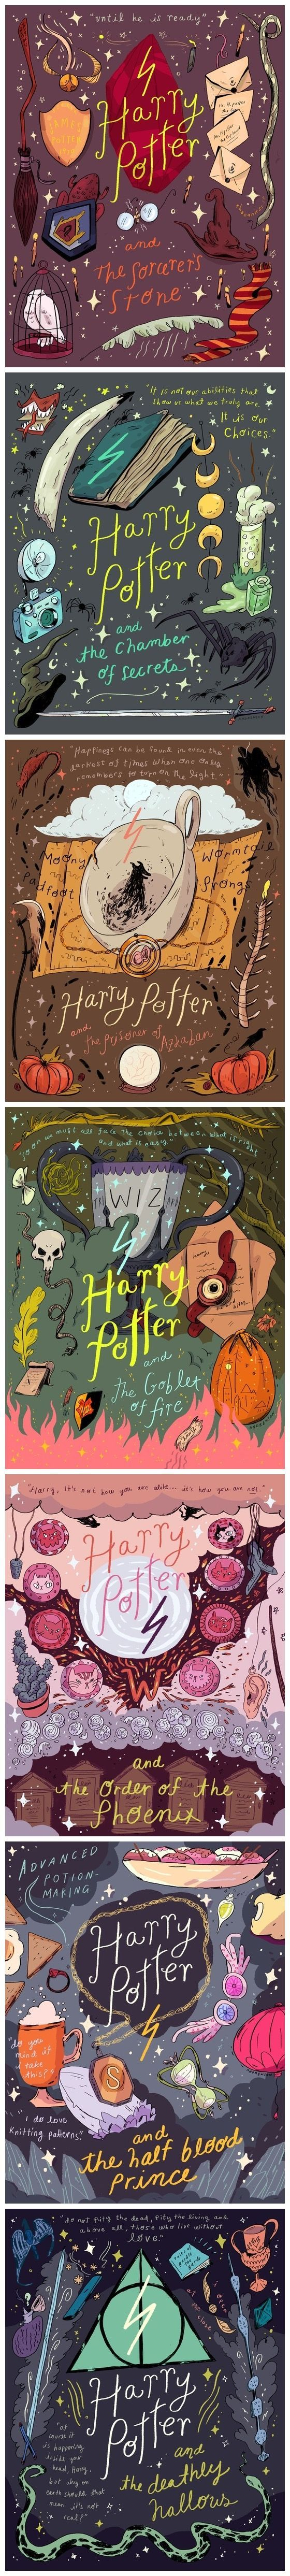 Harry Potter print Illustration from http://natalie-andrewson.tumblr.com/post/130281960238/hey-i-officially-have-all-the-harry-potter